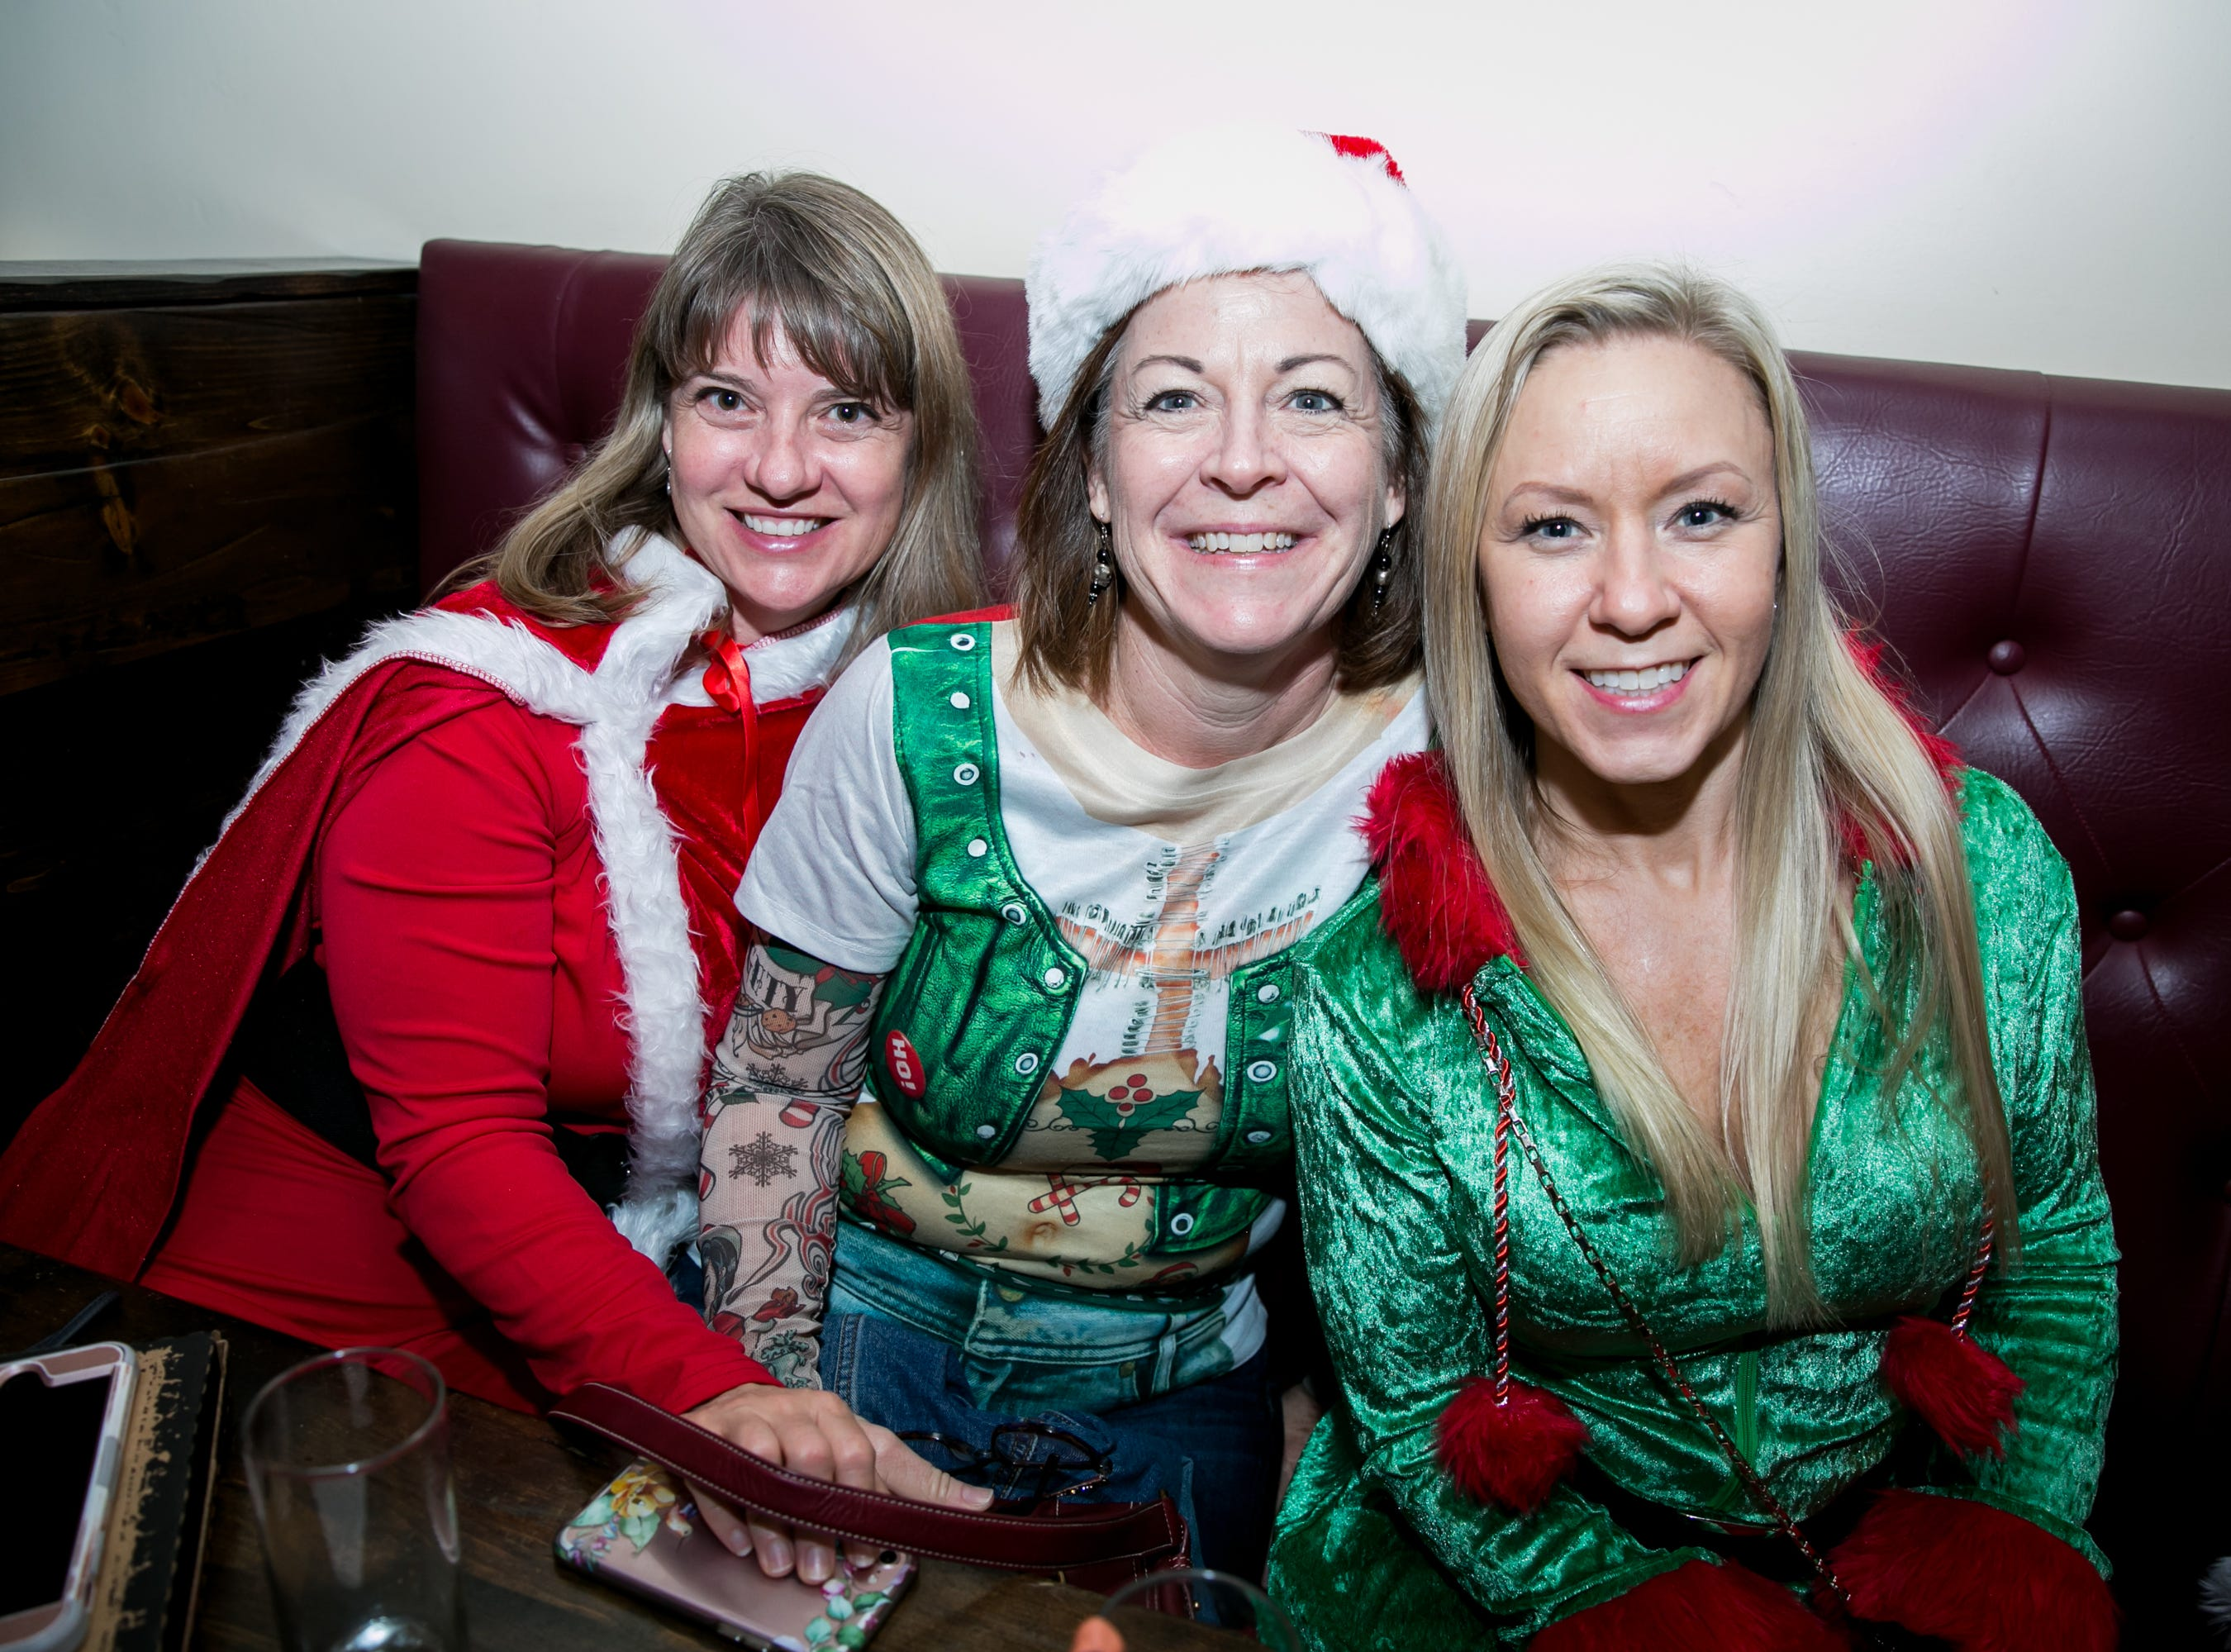 These ladies looked awesome at The Kettle Black during Santarchy on Saturday, December 8, 2018.